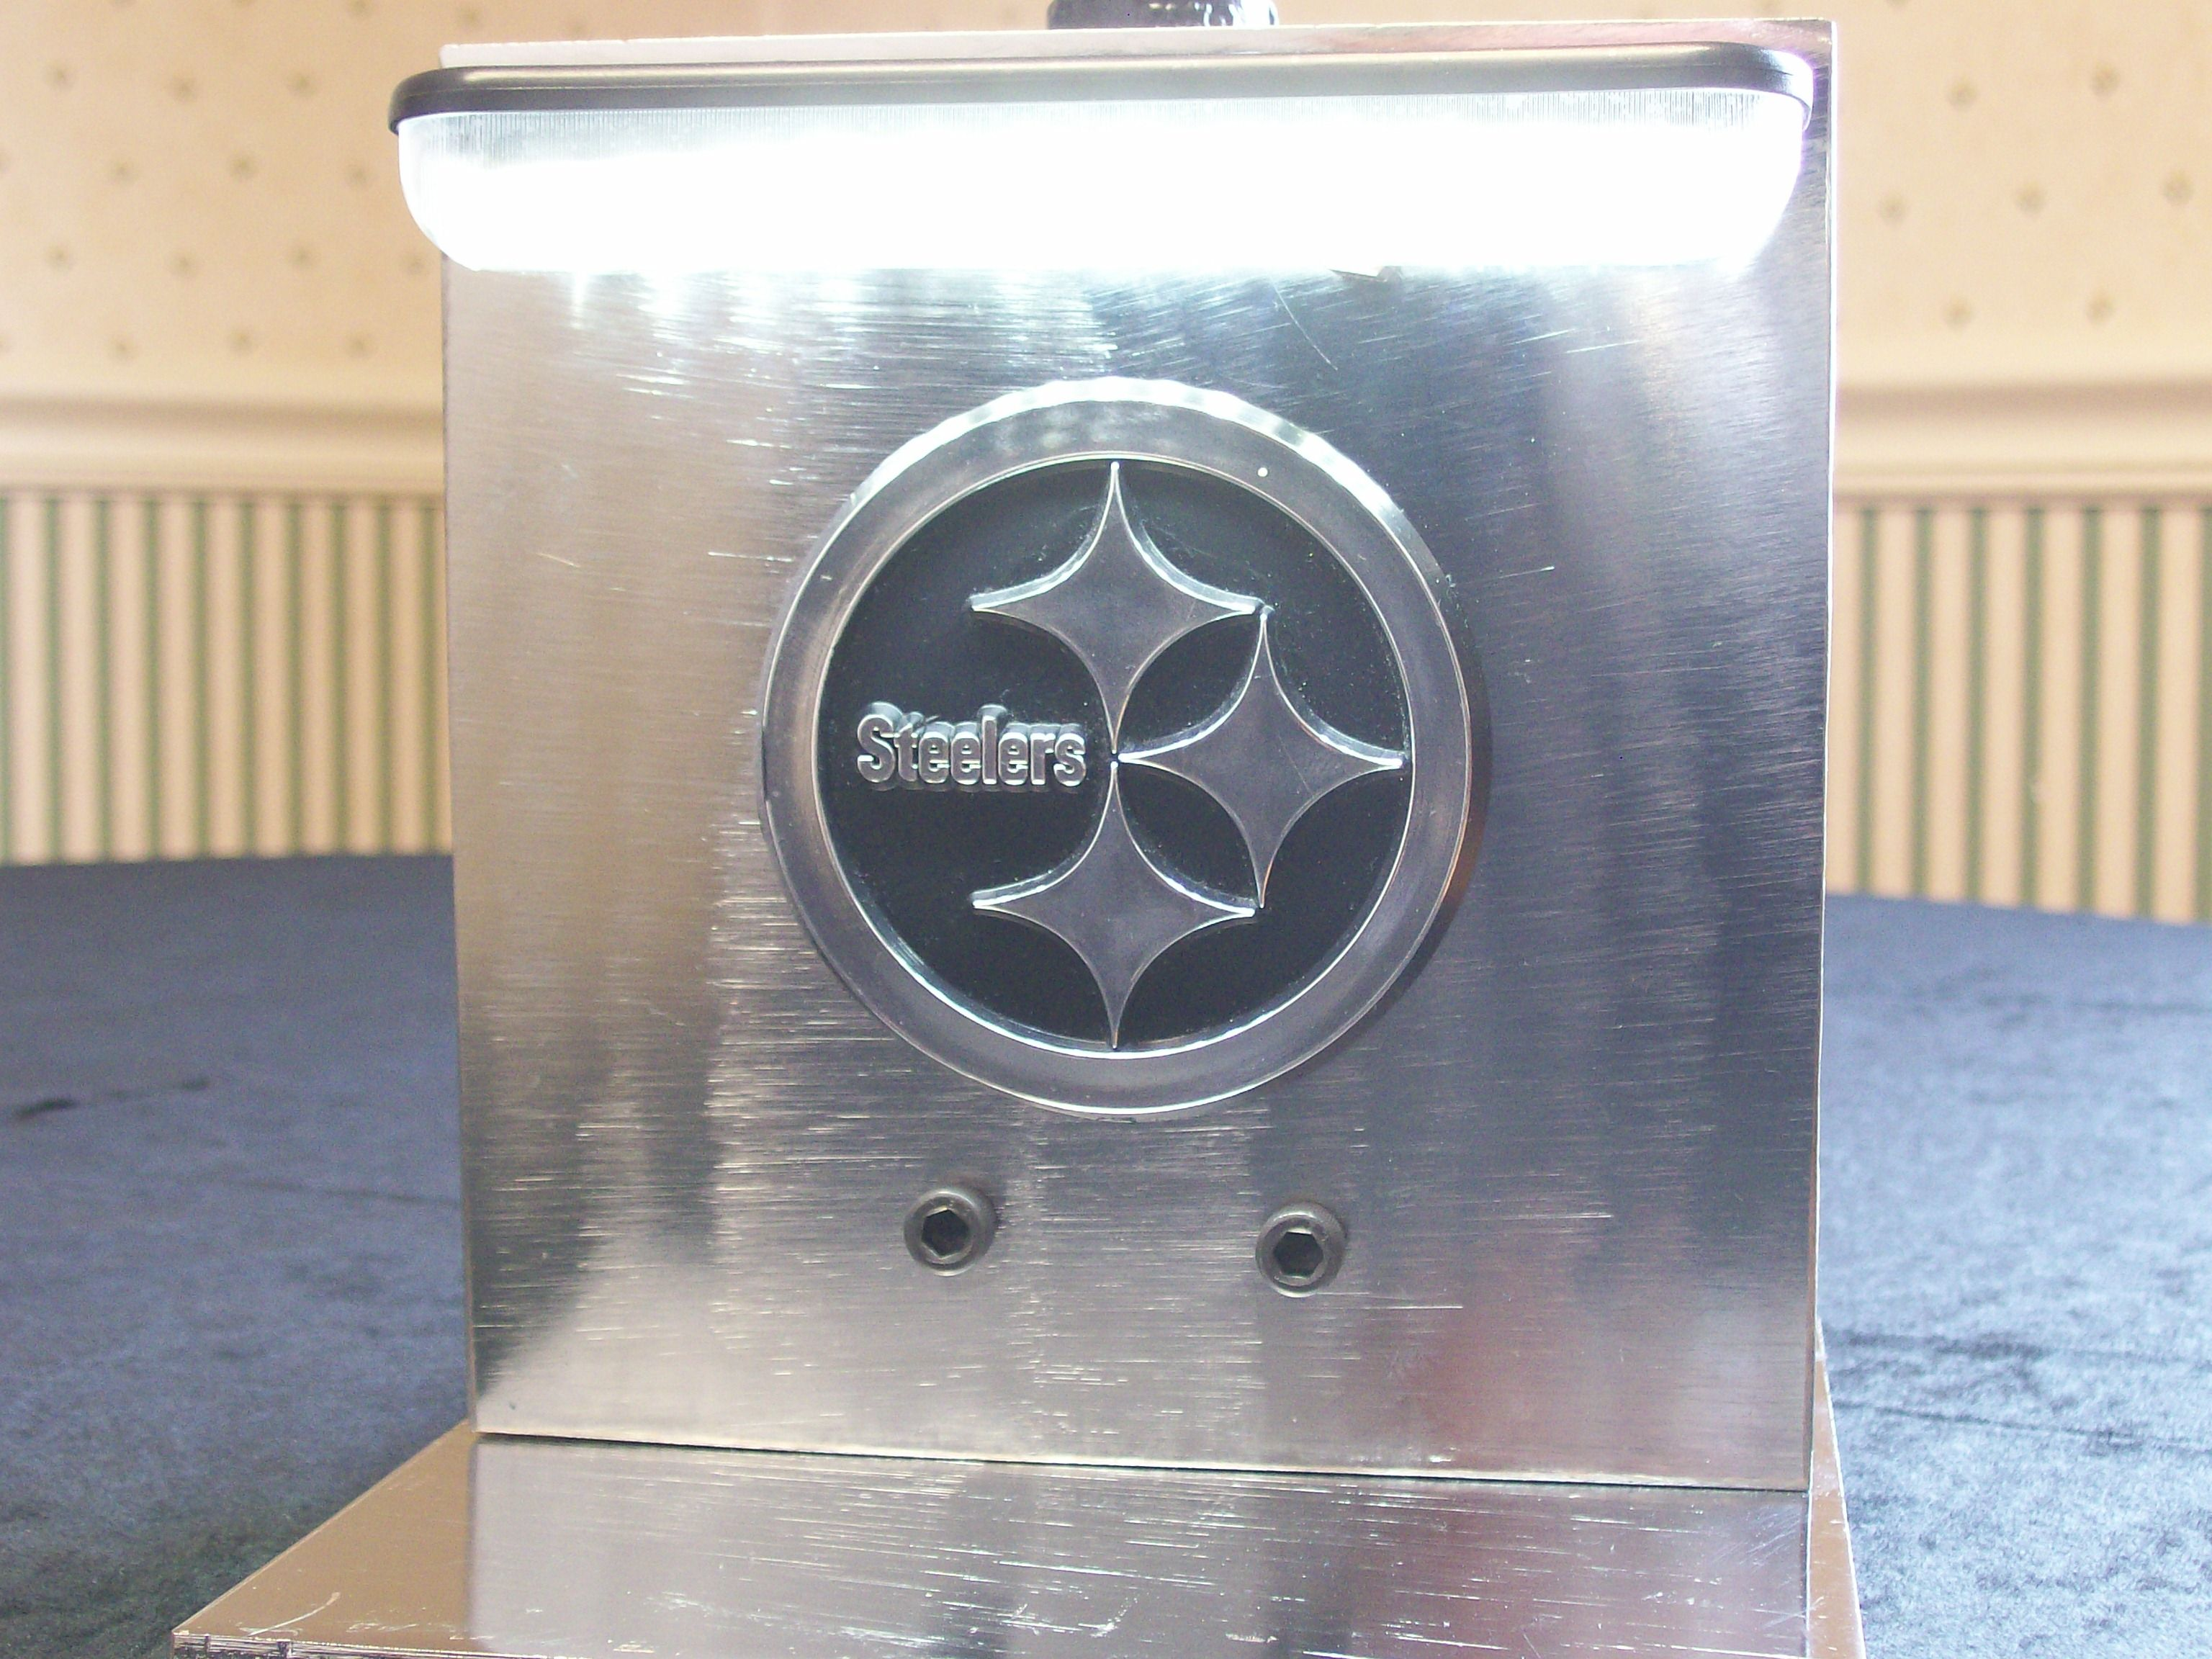 Industrial chrome Steelers emblem lamp thats dual purpose3 way